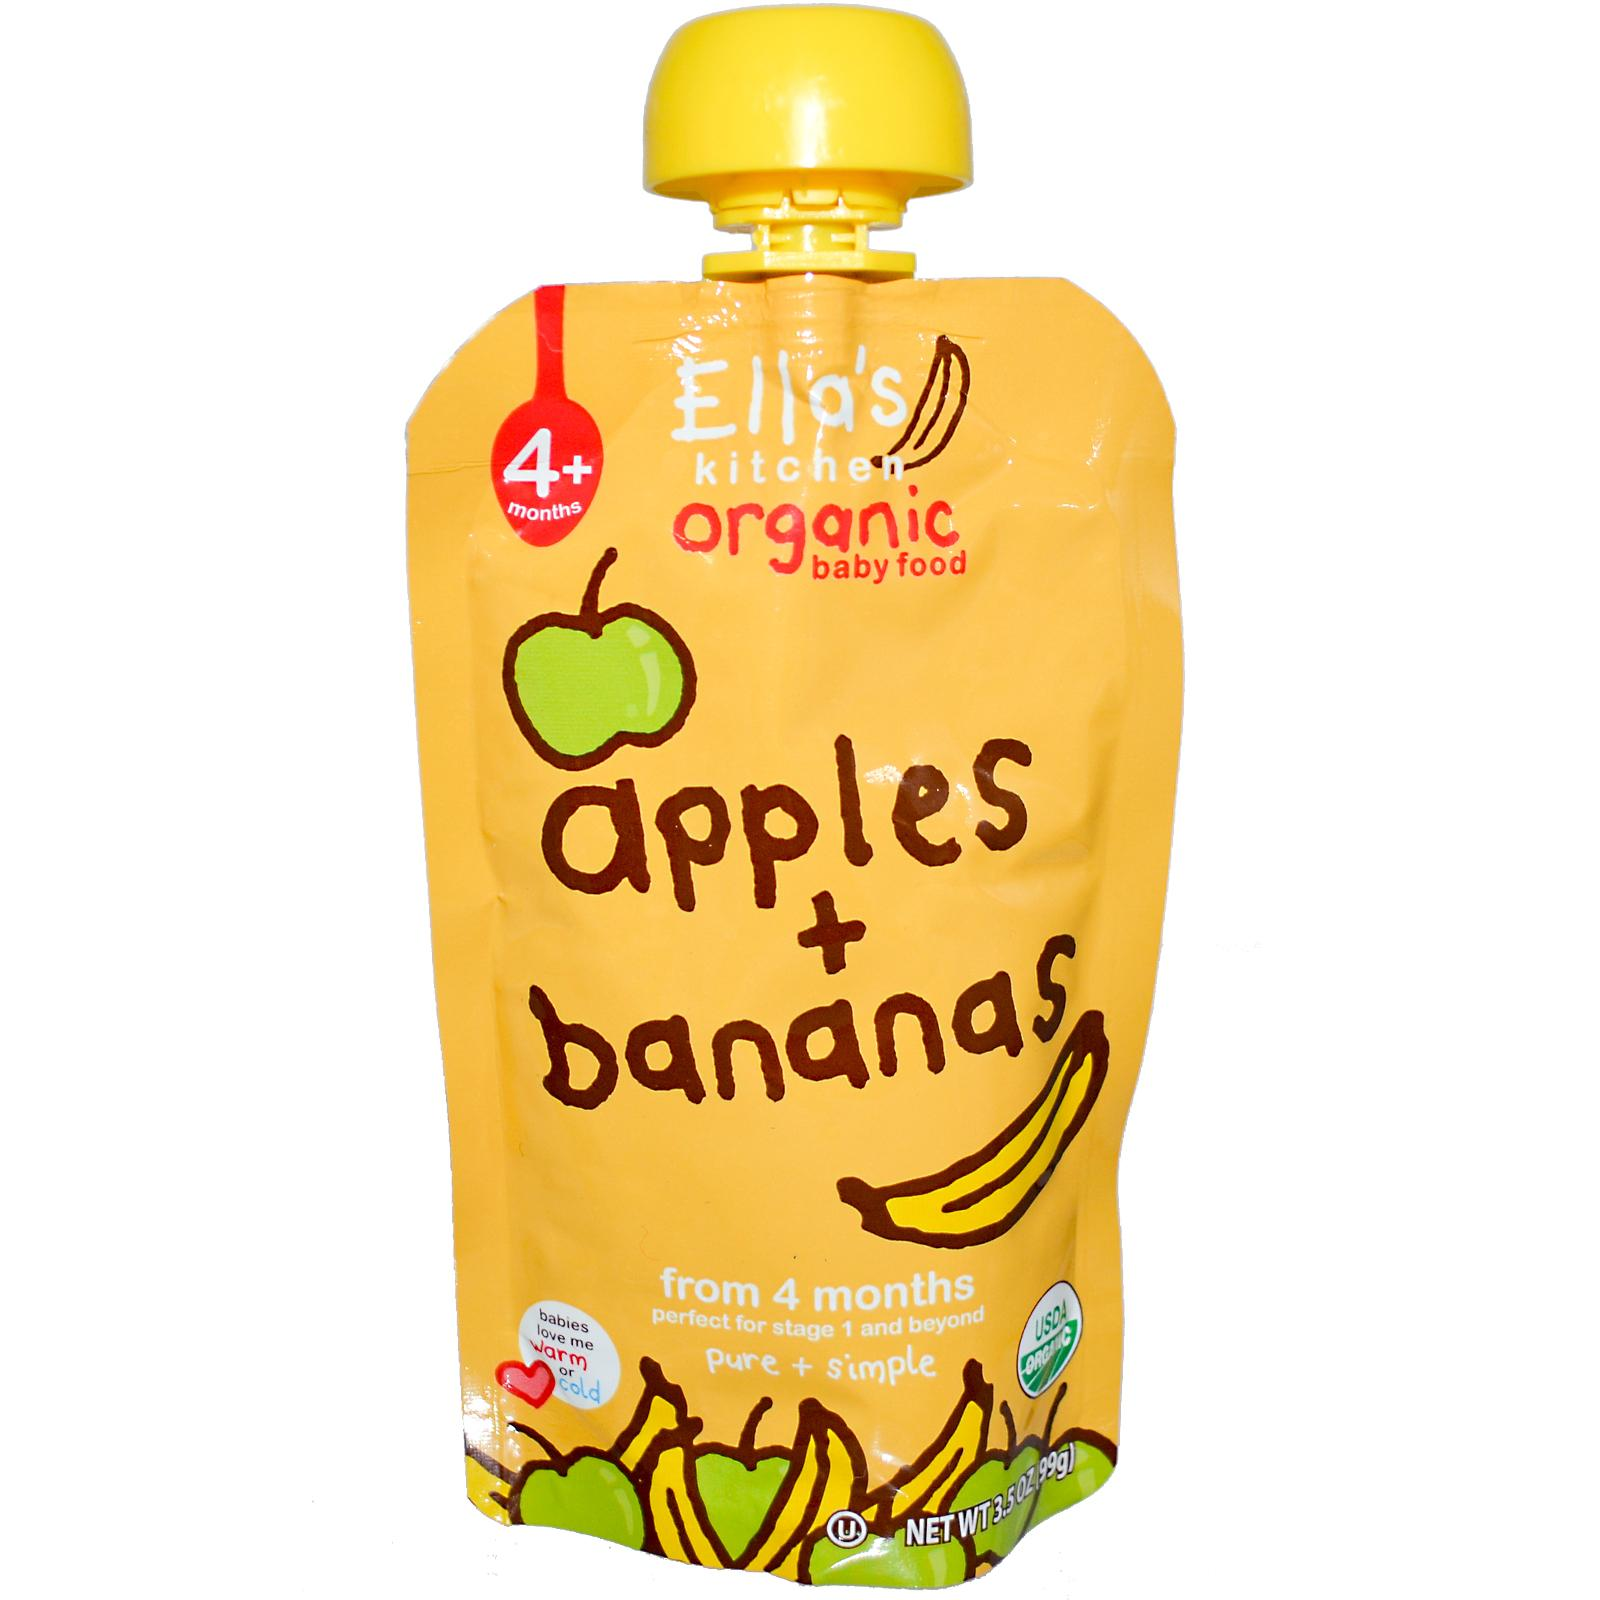 Ella s kitchen organic products baby food only at for Ella s kitchen coupons